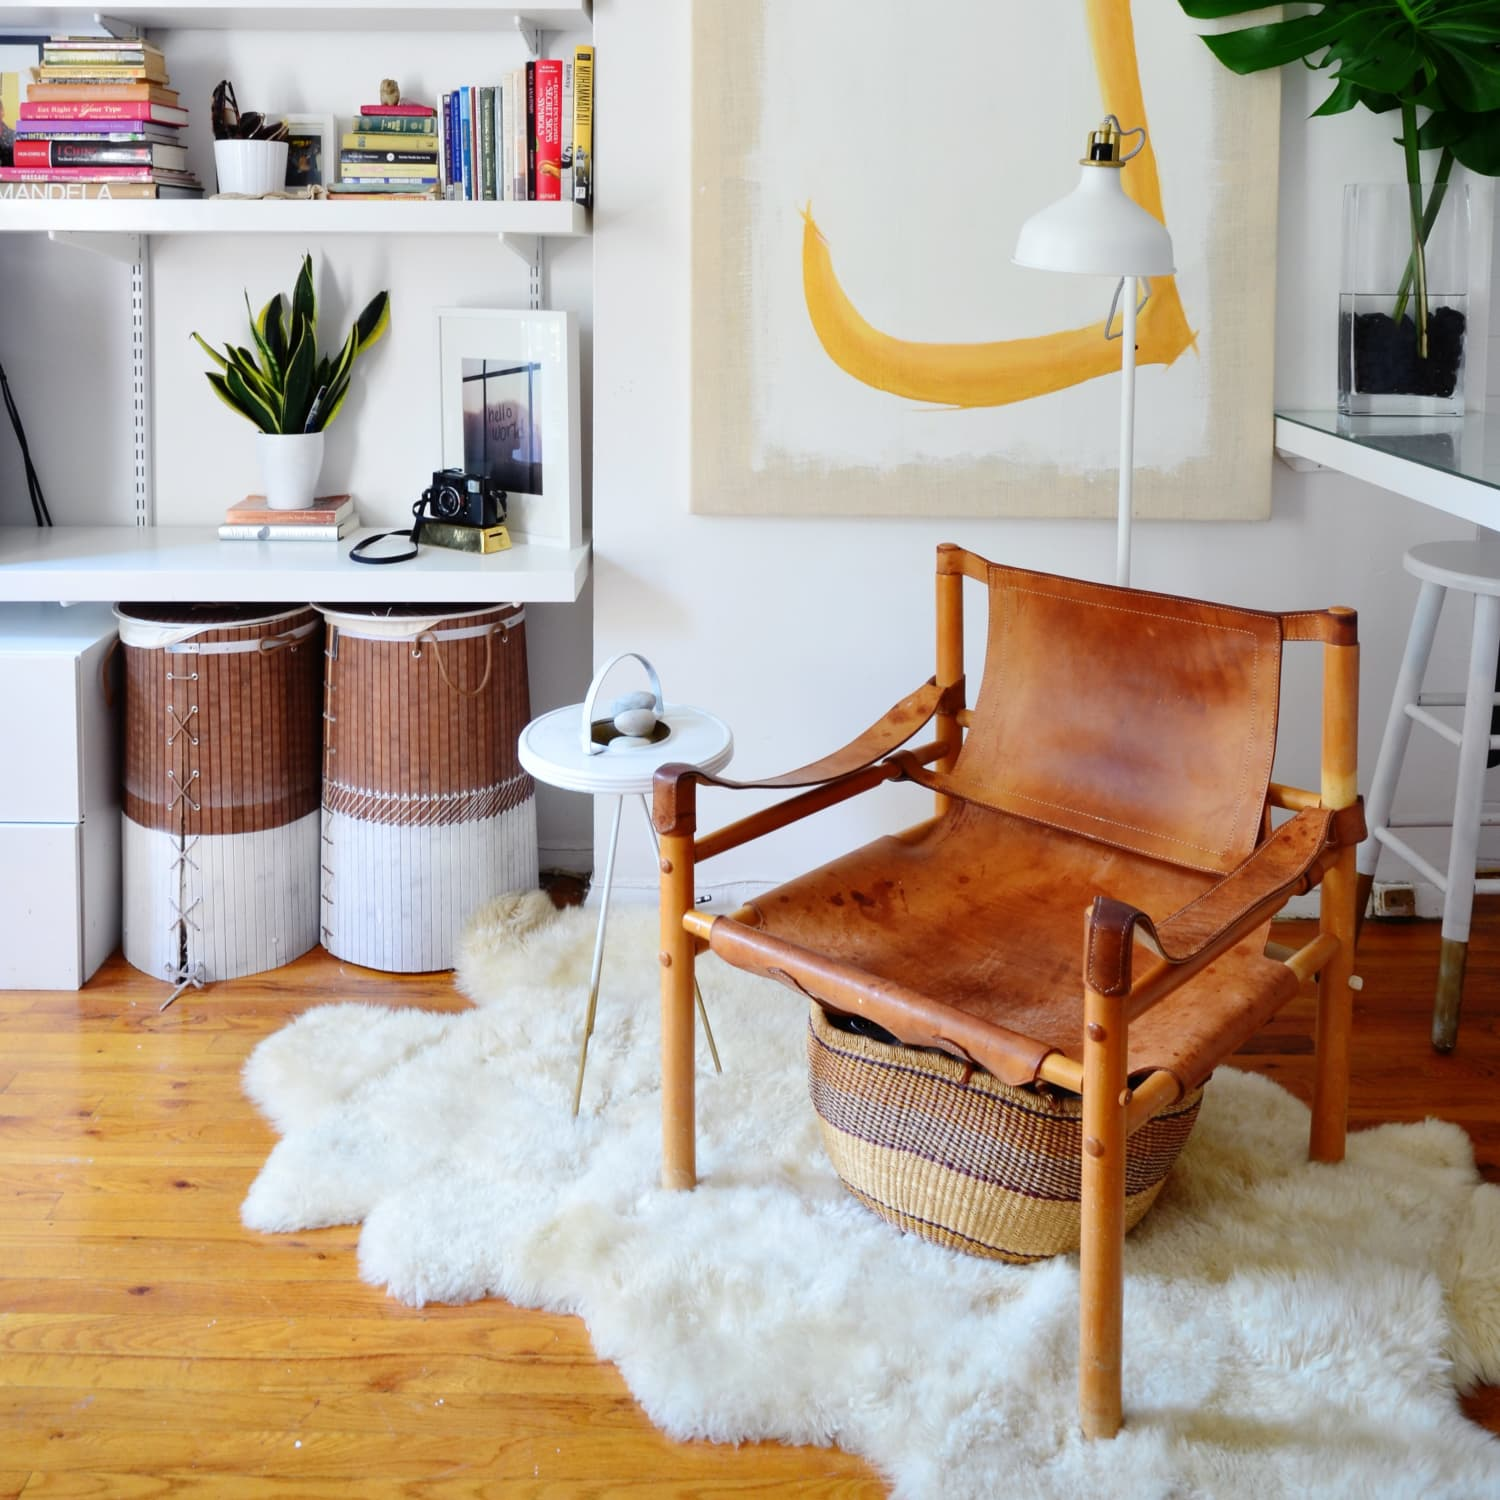 9 Smart Design Ideas For Your Studio Apartment | Apartment ...